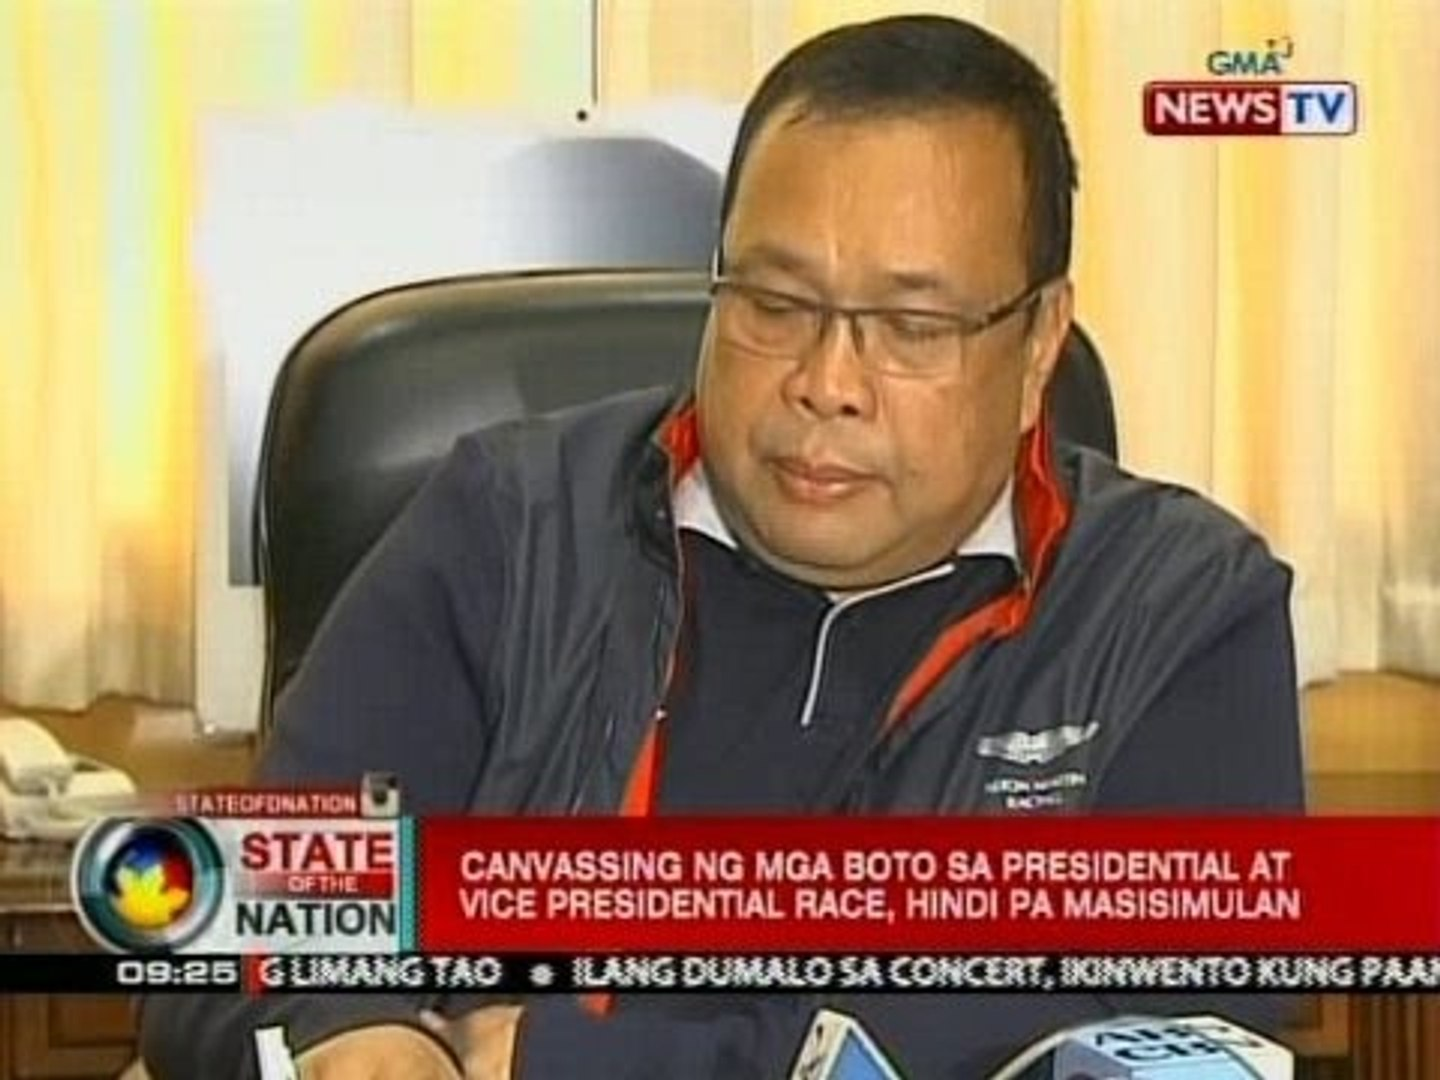 SONA: Canvassing ng mga boto sa presidential at vice presidential race, hindi pa masisimulan